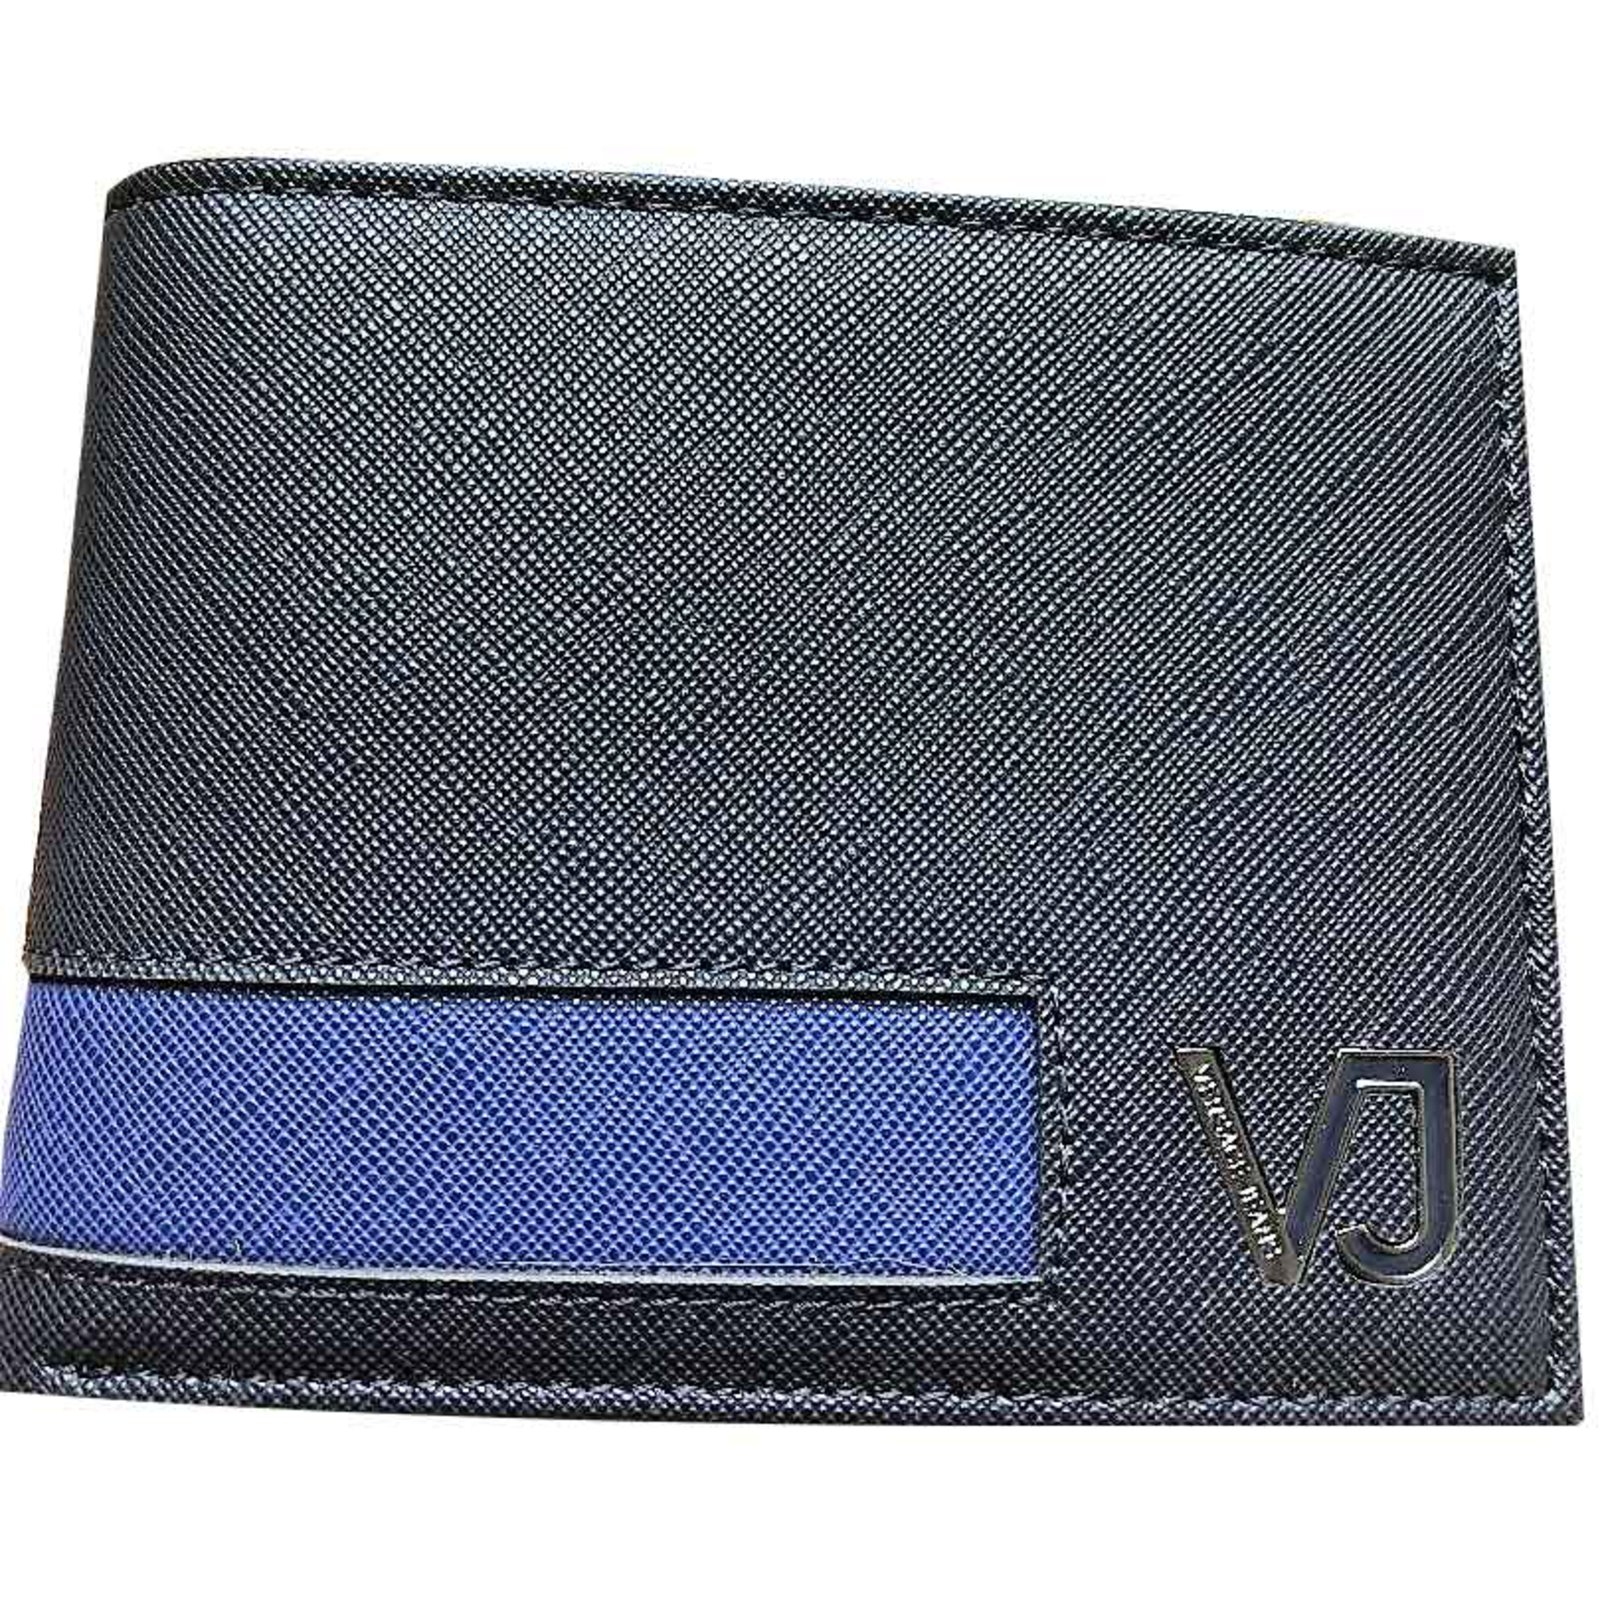 ee6b59e6238 Petite maroquinerie homme Versace PORTEFEUILLE CUIR NEUF HOMME VERSACE  JEANS Cuir Bleu ref.101590